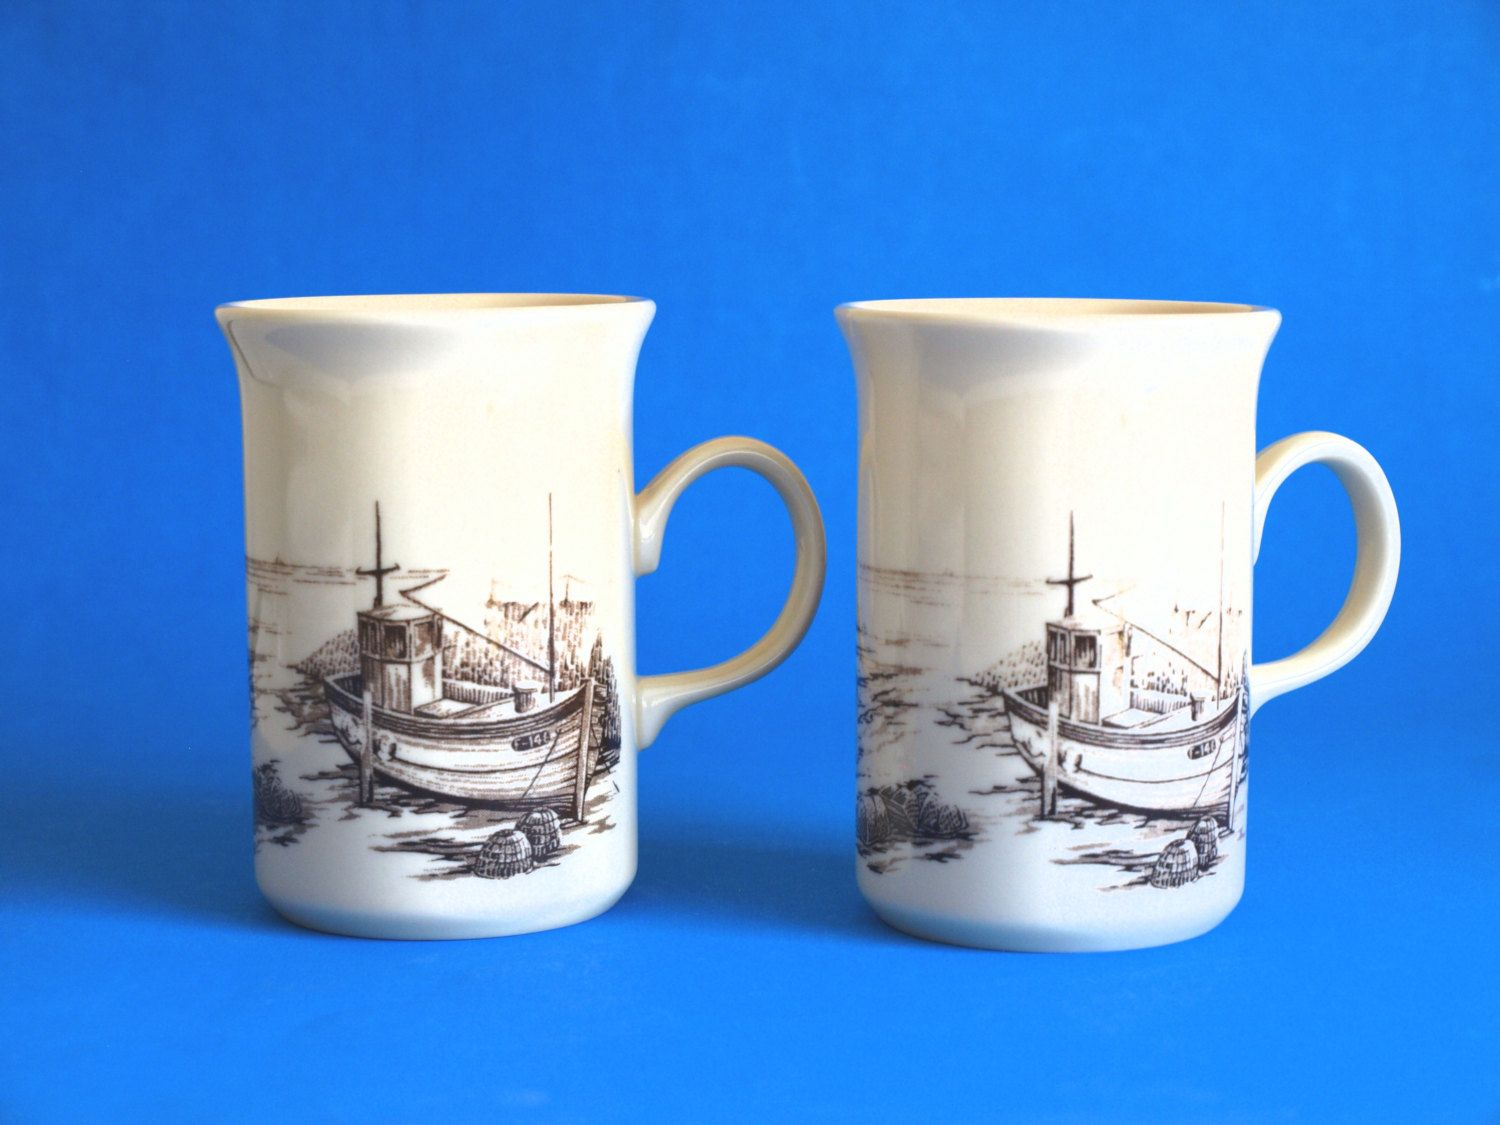 Churchill Pottery Fishing Boat Mug - Retro Vintage Trawler Tugboat Fisherman Mug - Two Available - Made in England & Churchill Pottery Fishing Boat Mug - Retro Vintage Trawler Tugboat ...